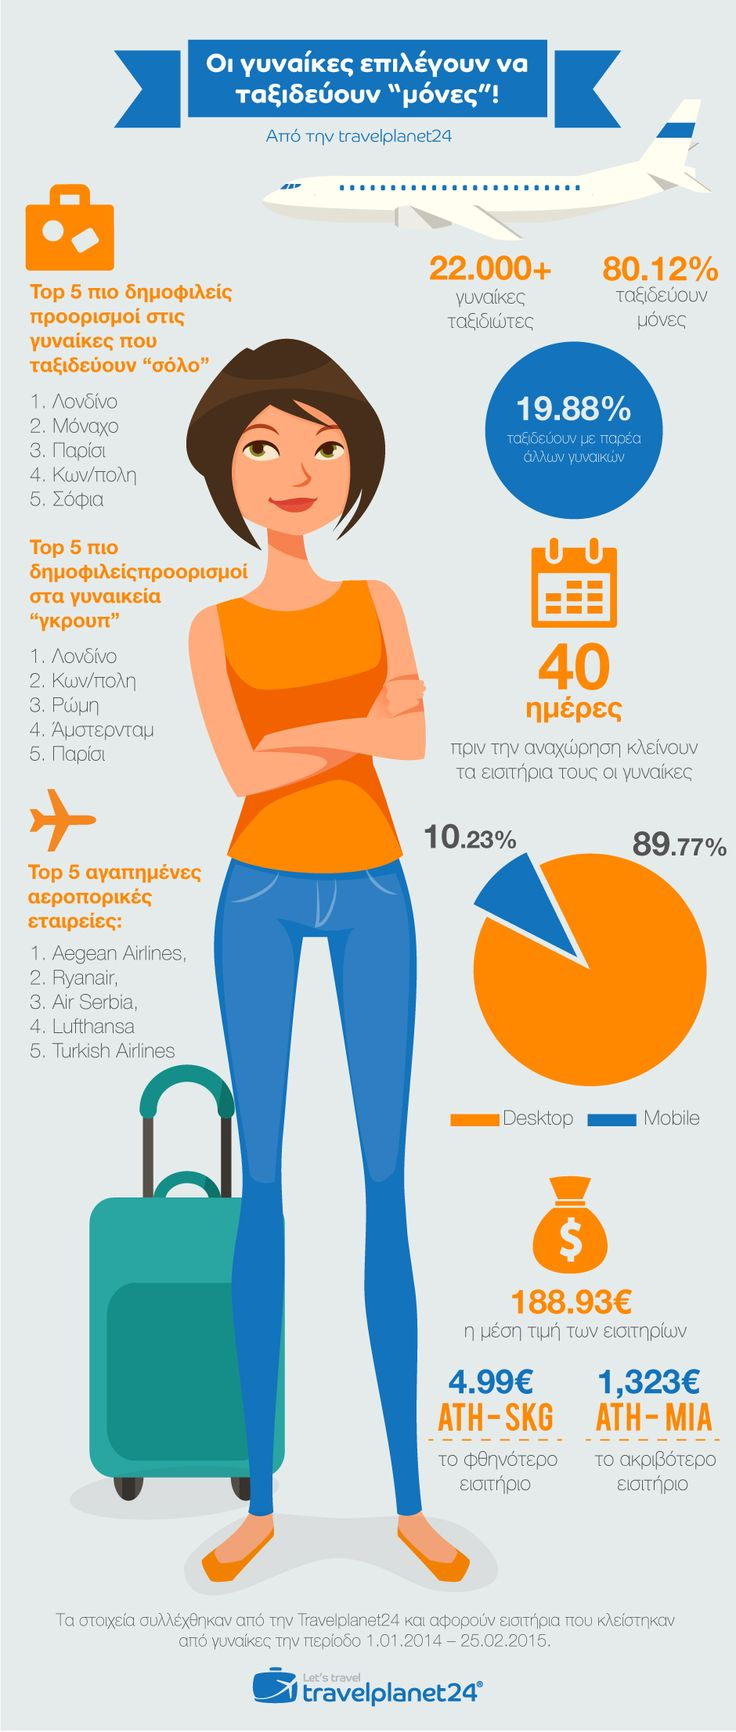 Solo Holidays - How Women Travel in Greece #travelplanet24 #infographic